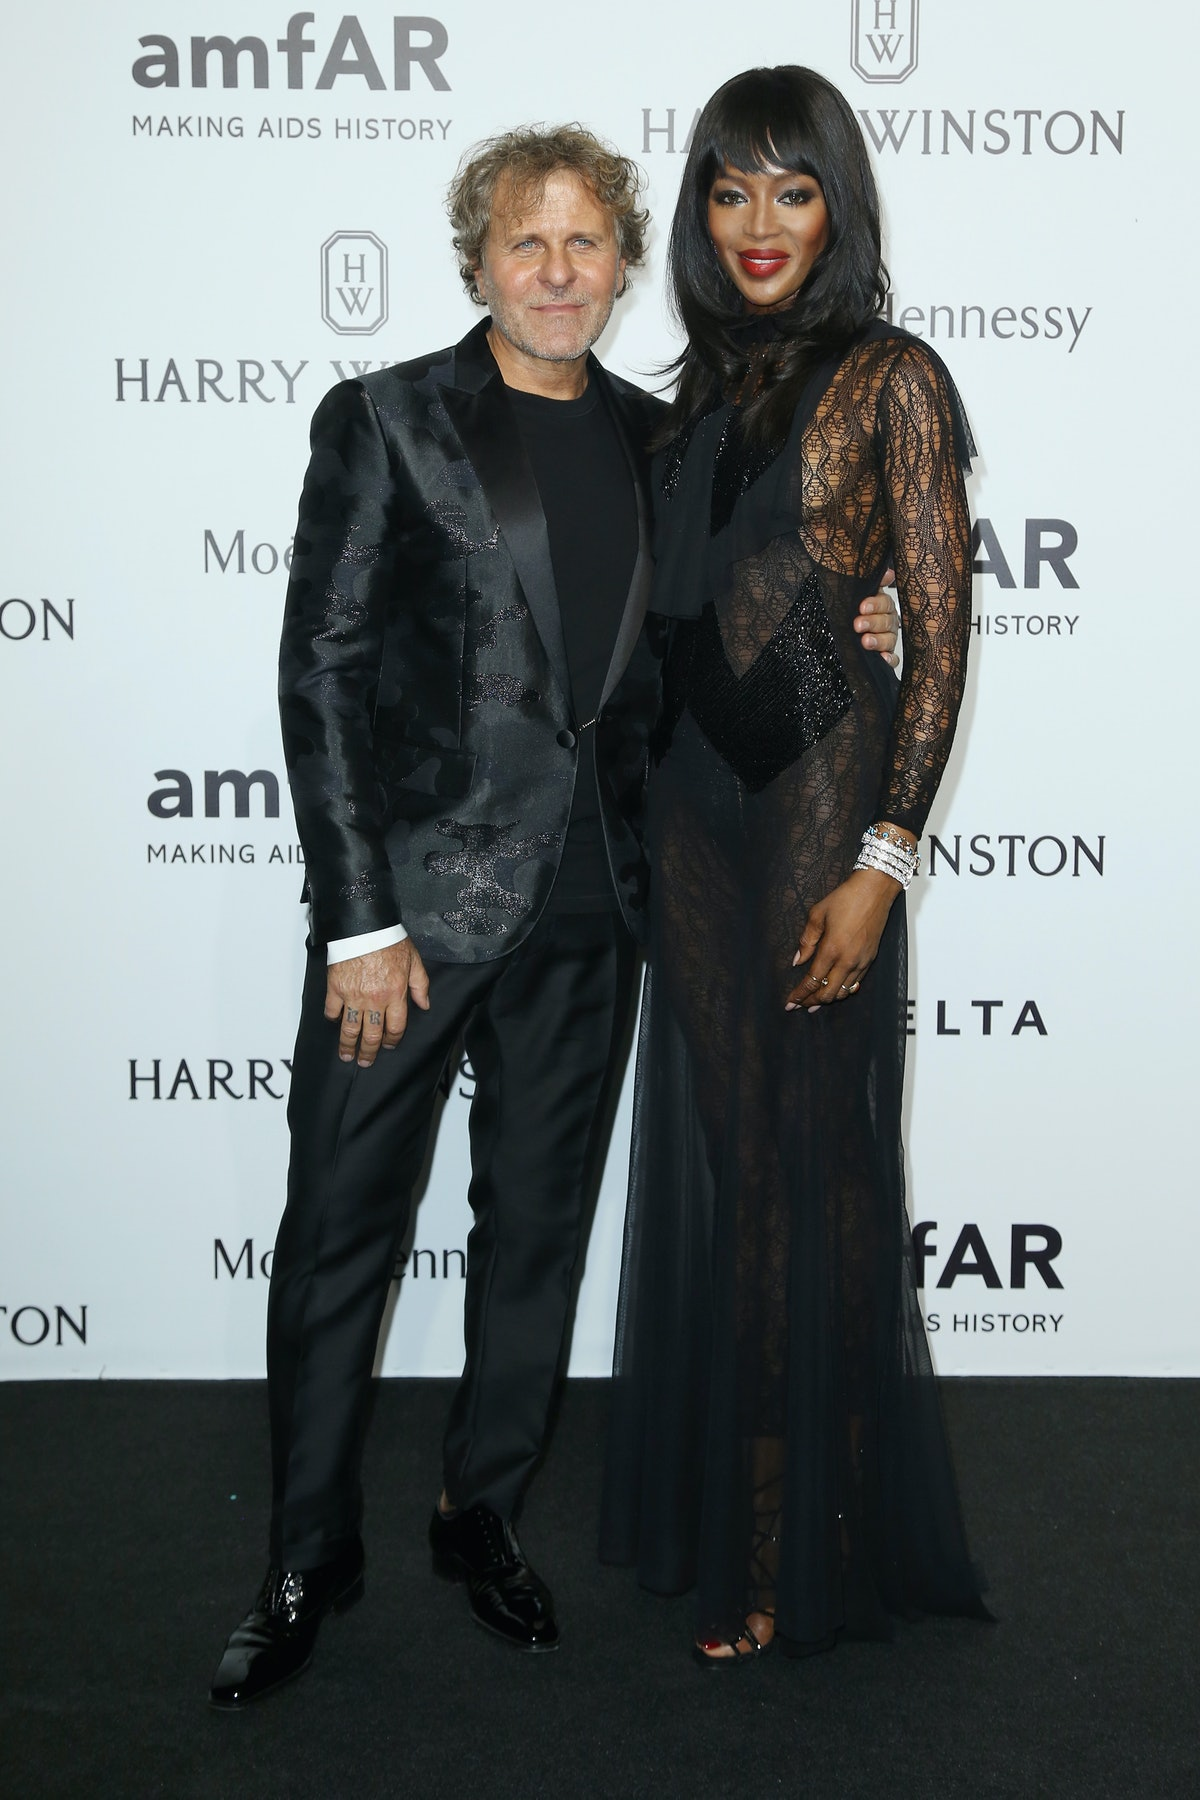 Renzo Rosso and Naomi Campbell